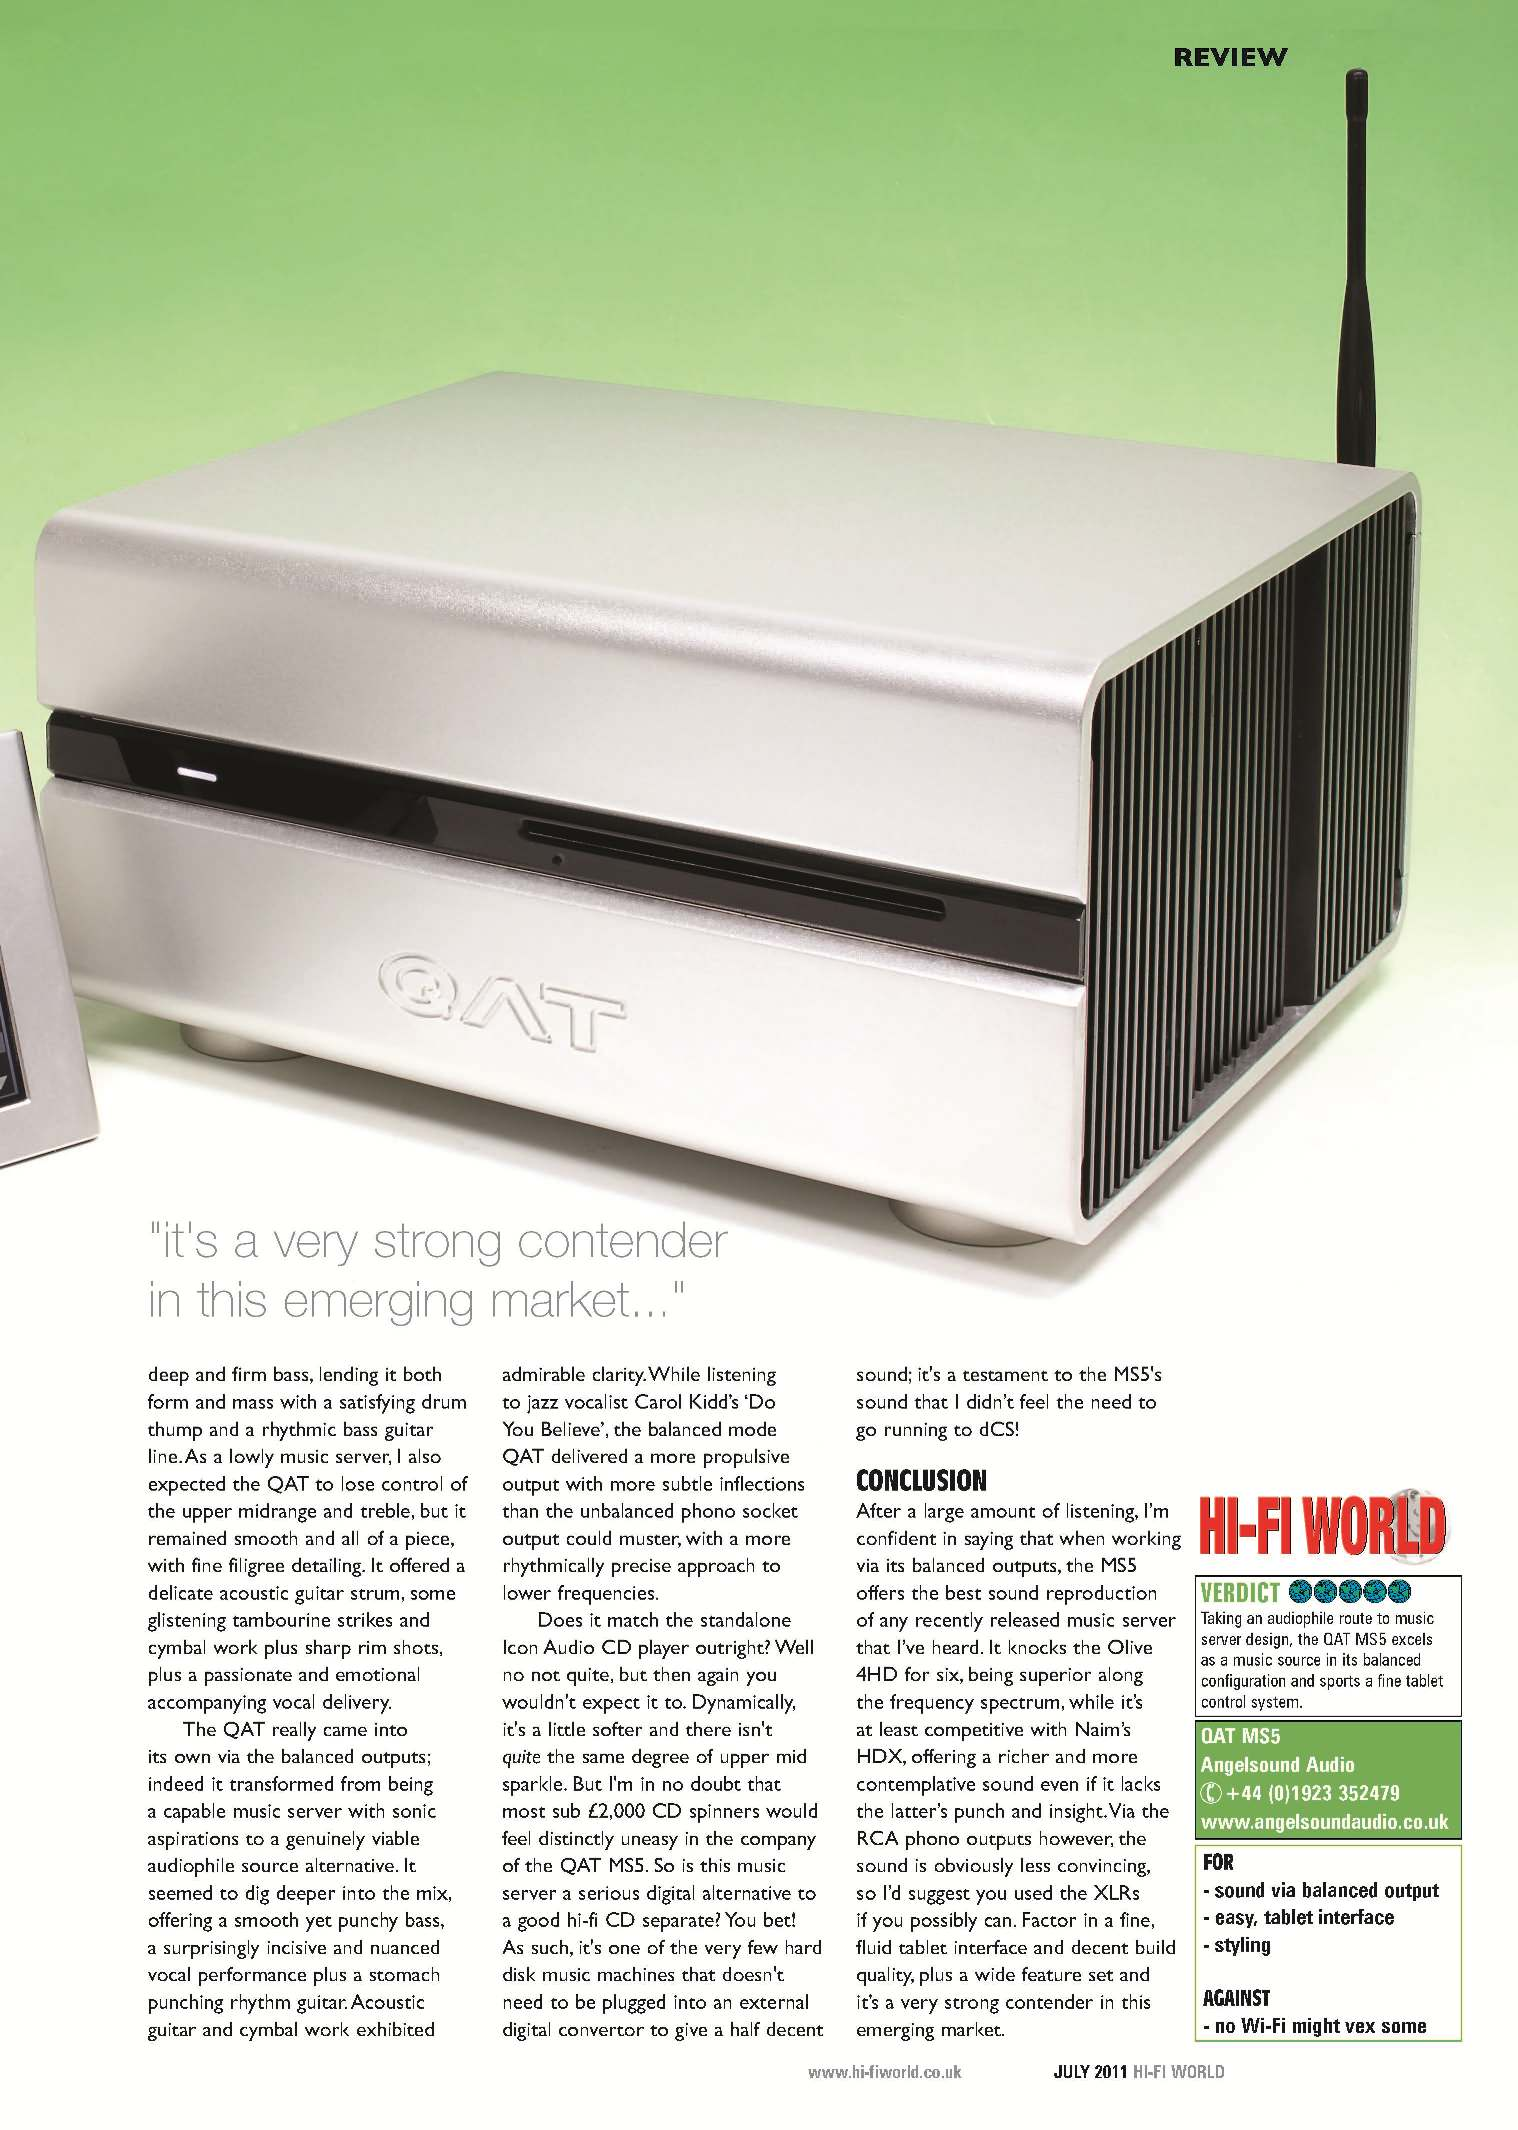 MS5 ' HI-FI WORLD REVIEW - taste - music server website